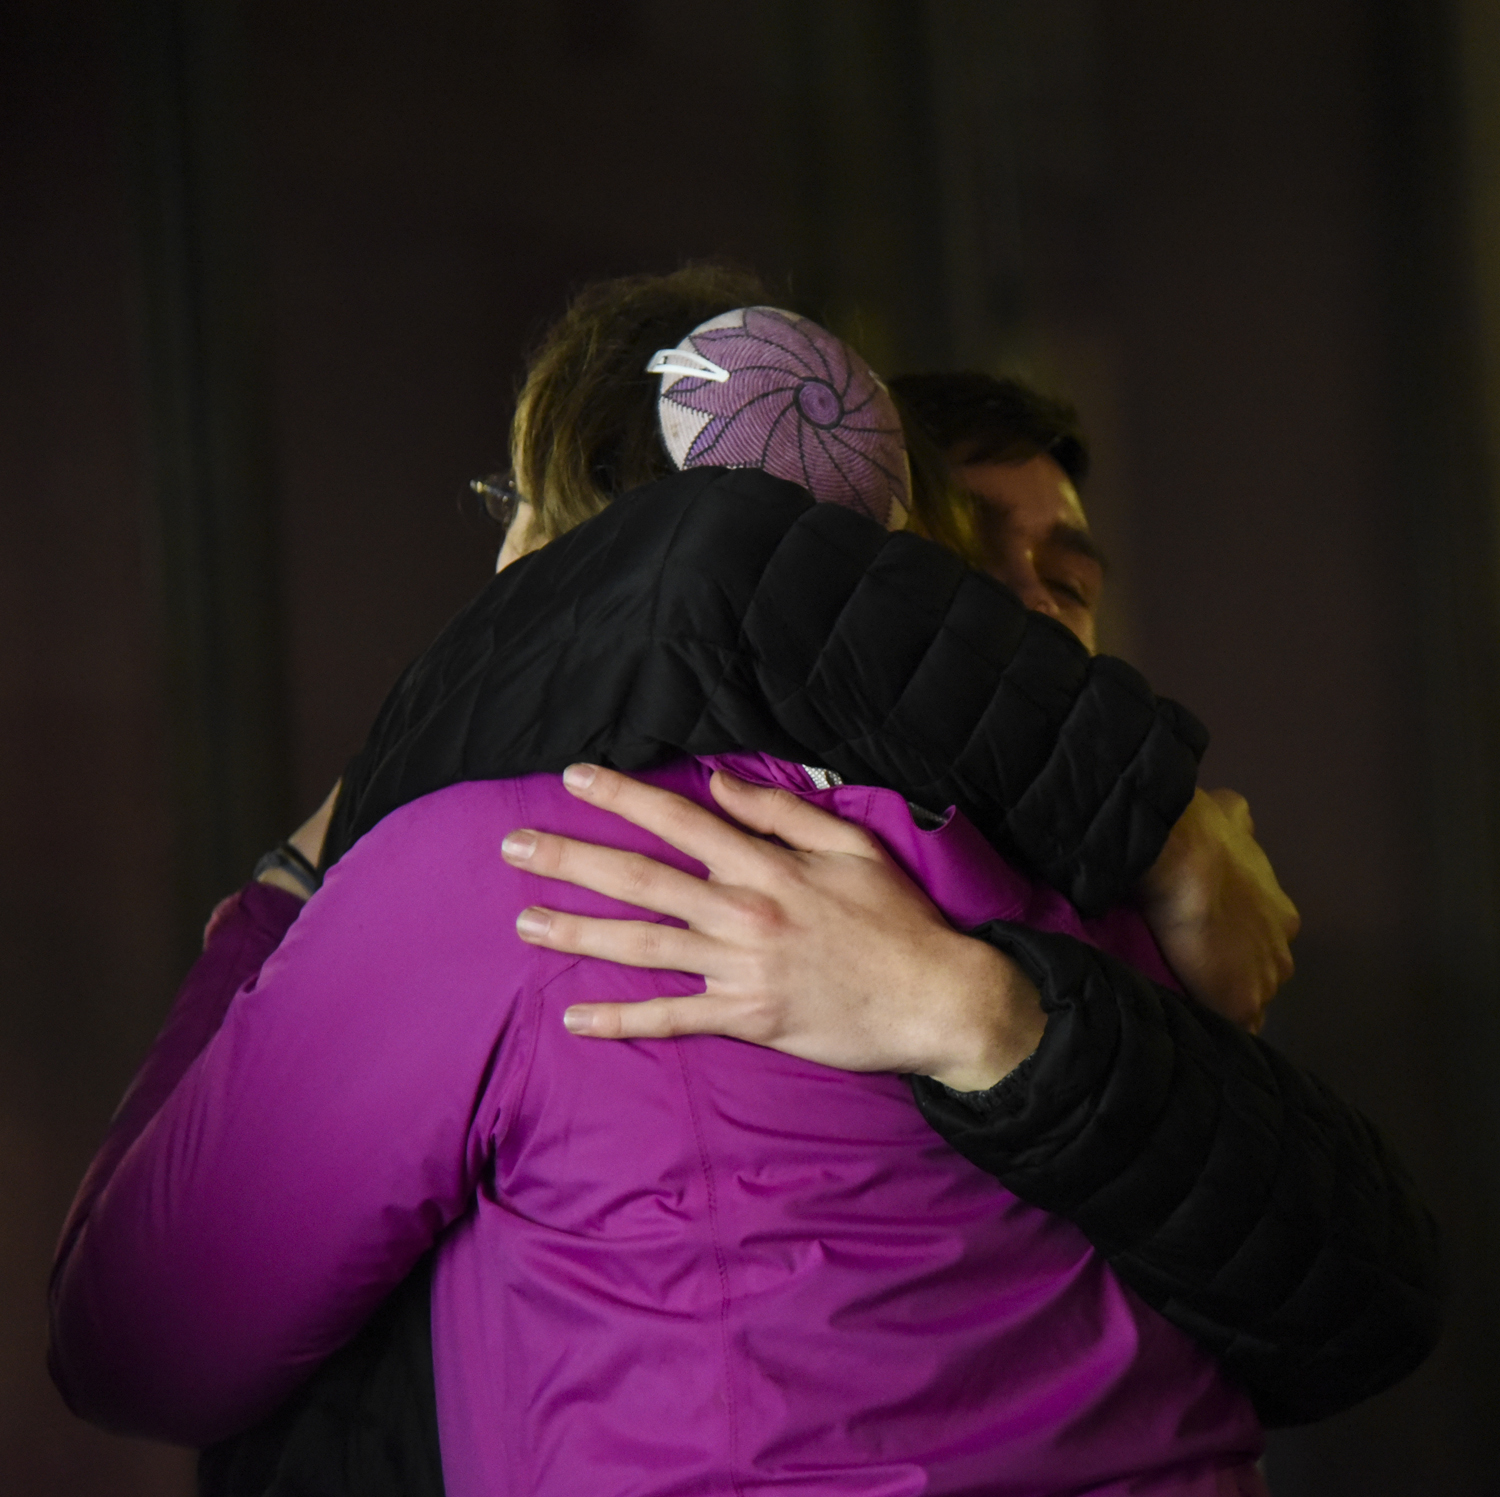 Mourners embrace after the Saturday night vigil for the victims of the shooting at Tree of Life Synagogue ends.